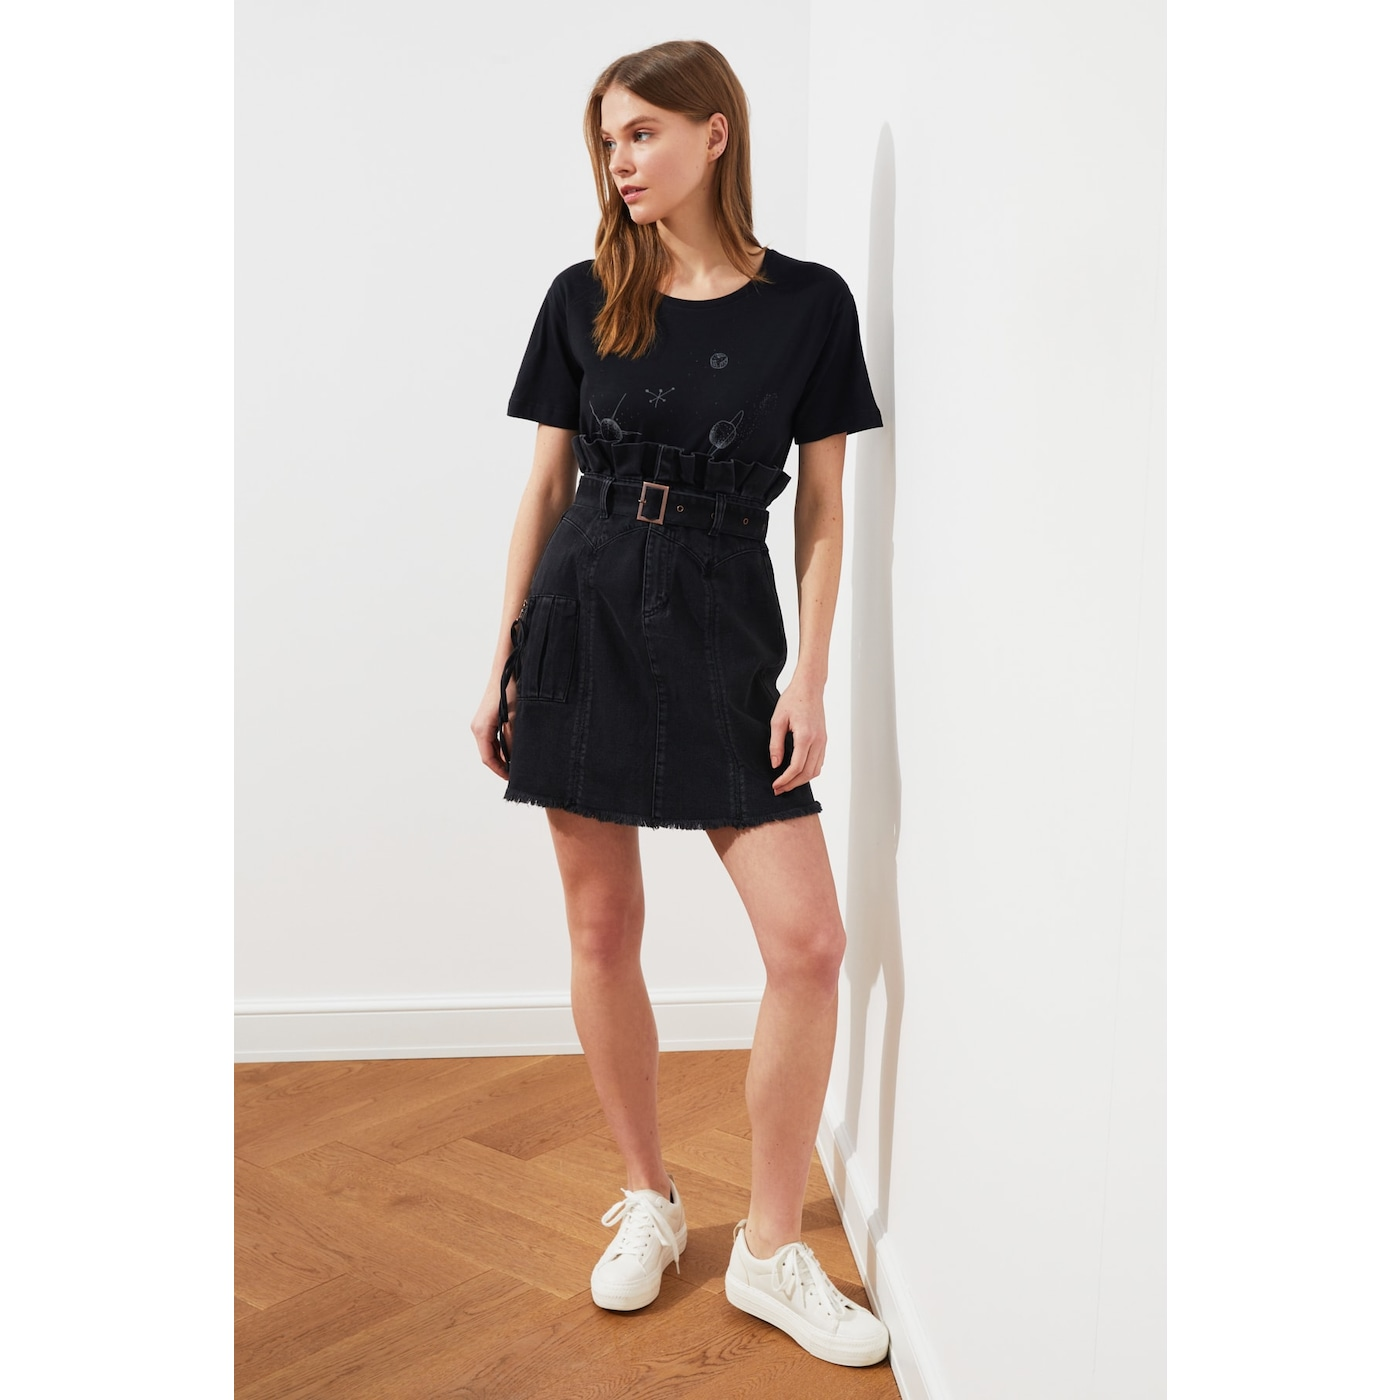 Trendyol Anthracite Waist Ruffled Belt Mini Denim Skirt dámské 42